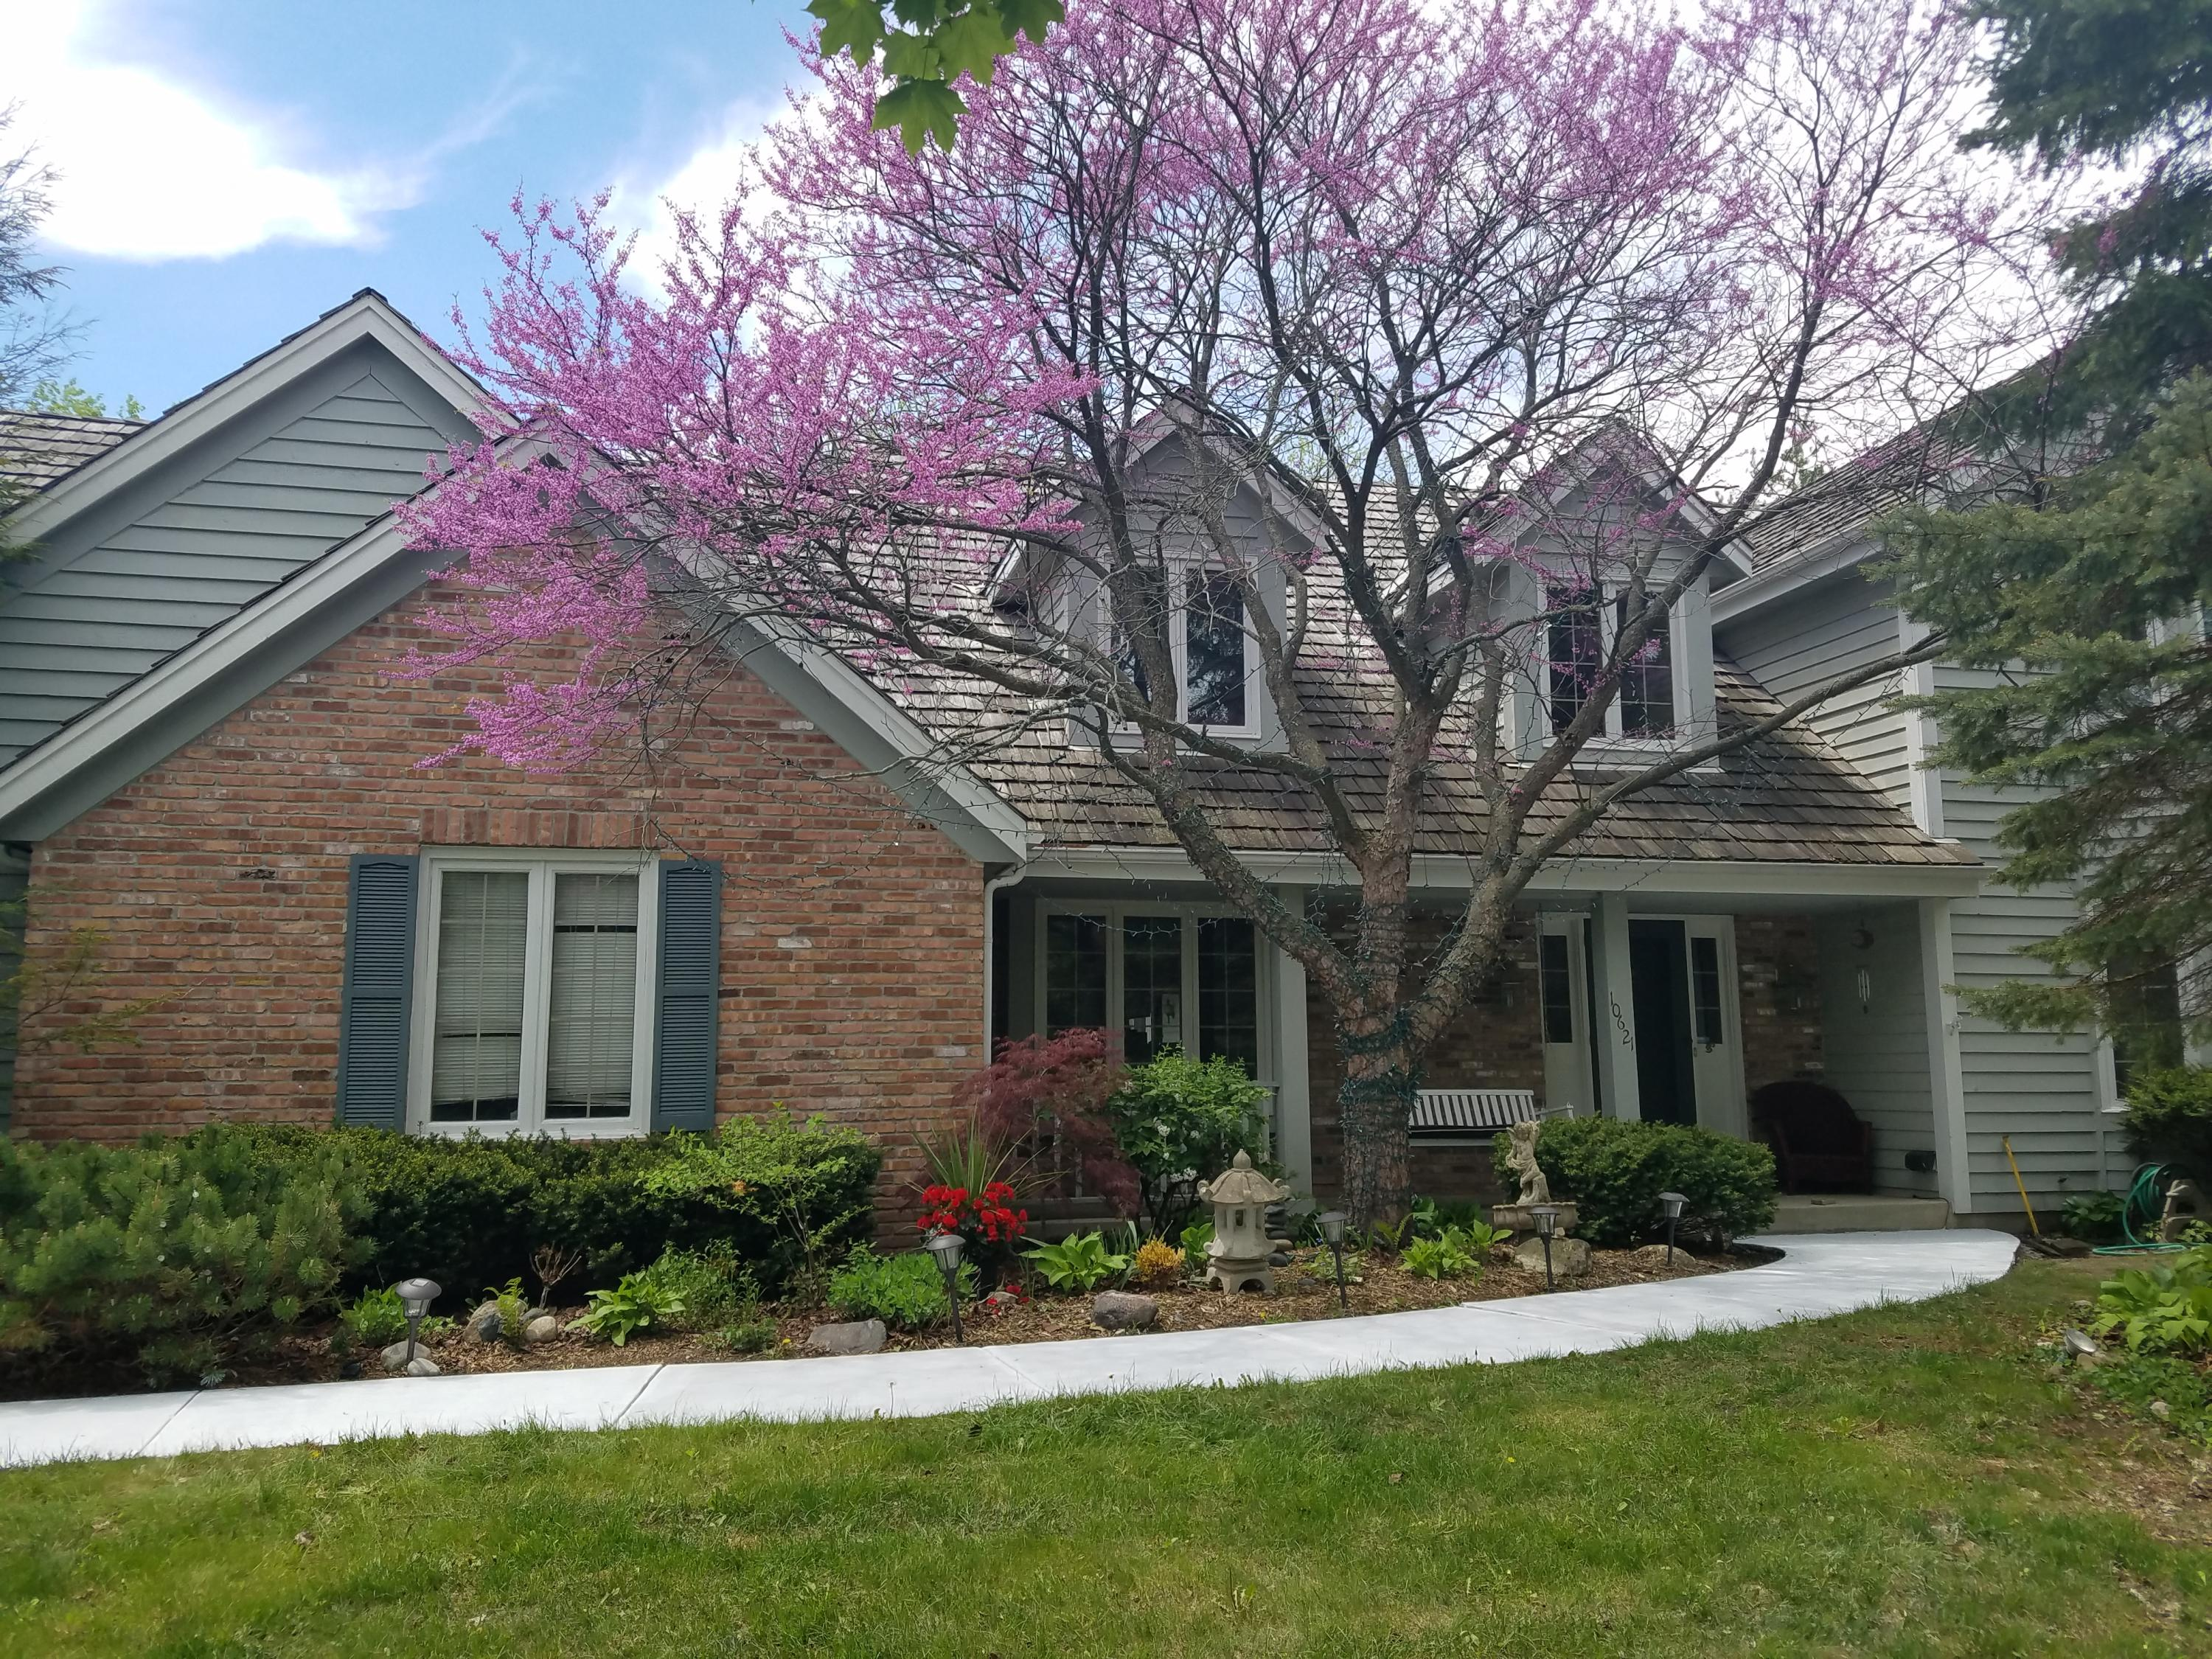 10621 Riverlake Ct, Mequon, Wisconsin 53092, 4 Bedrooms Bedrooms, 9 Rooms Rooms,3 BathroomsBathrooms,Single-Family,For Sale,Riverlake Ct,1620488